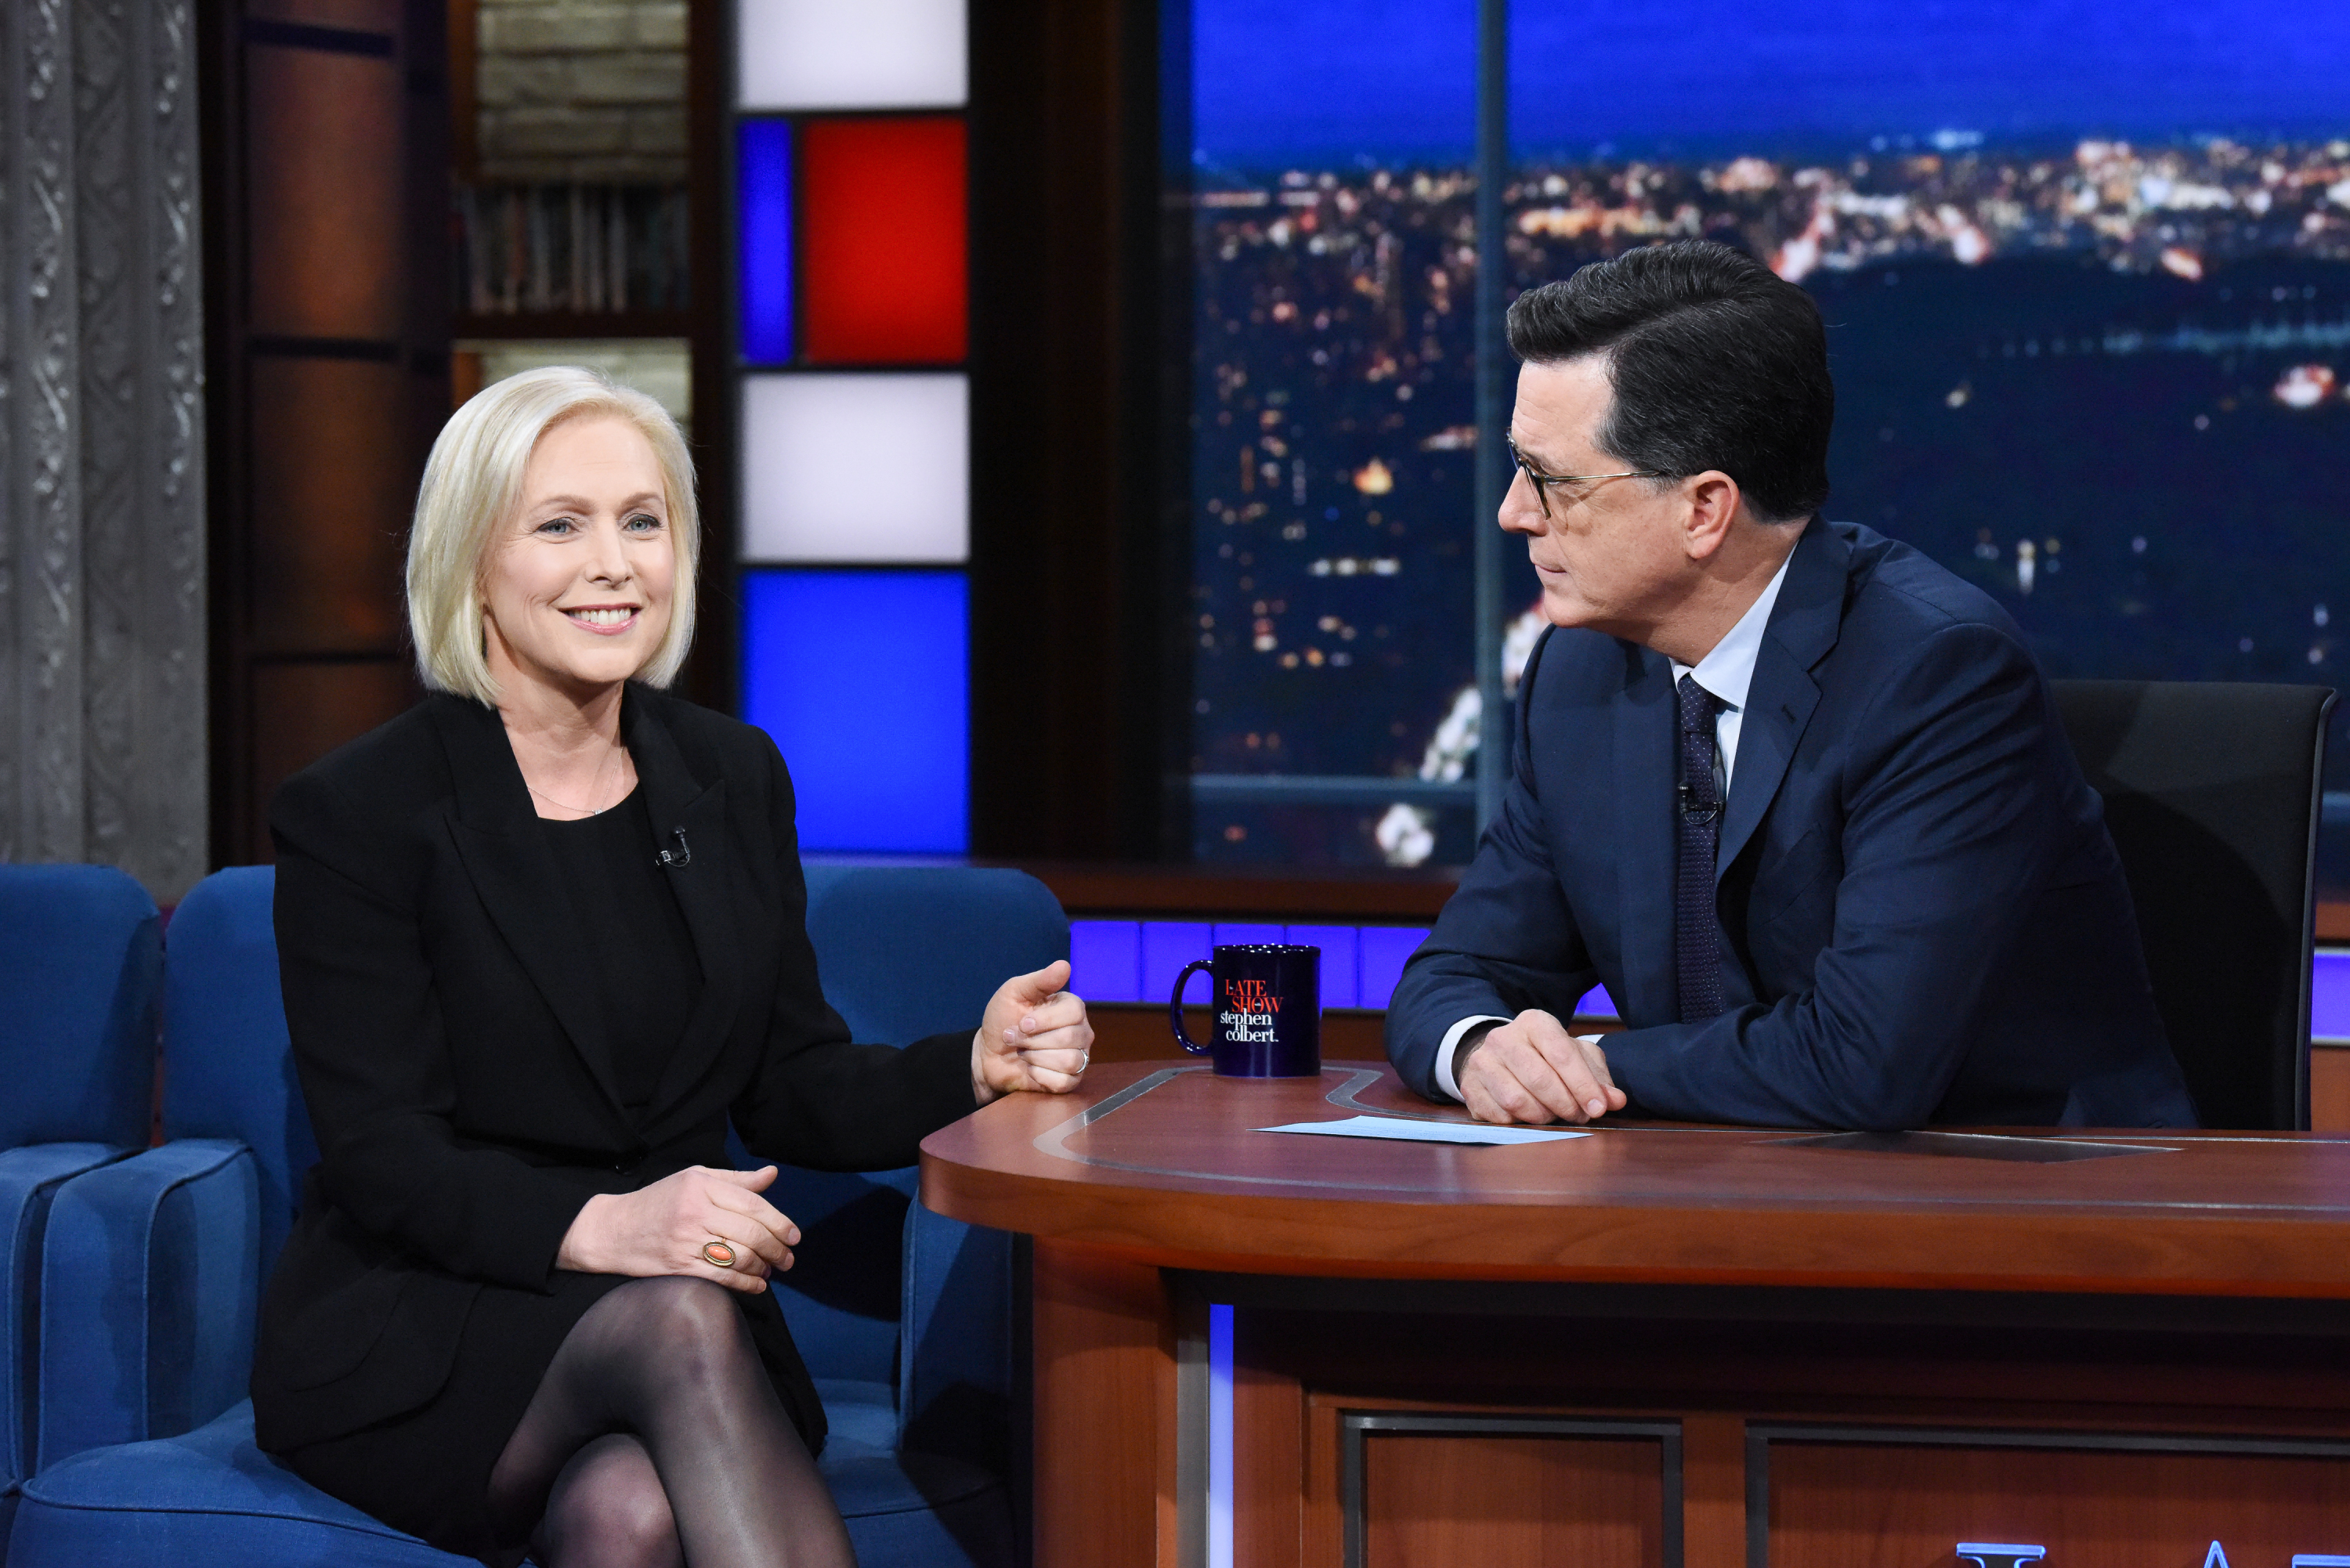 NEW YORK - NOVEMBER 8: The Late Show with Stephen Colbert and guest Sen. Kirsten Gillibrand during Thursday's November 8, 2018 live show. (Photo by Scott Kowalchyk/CBS via Getty Images)